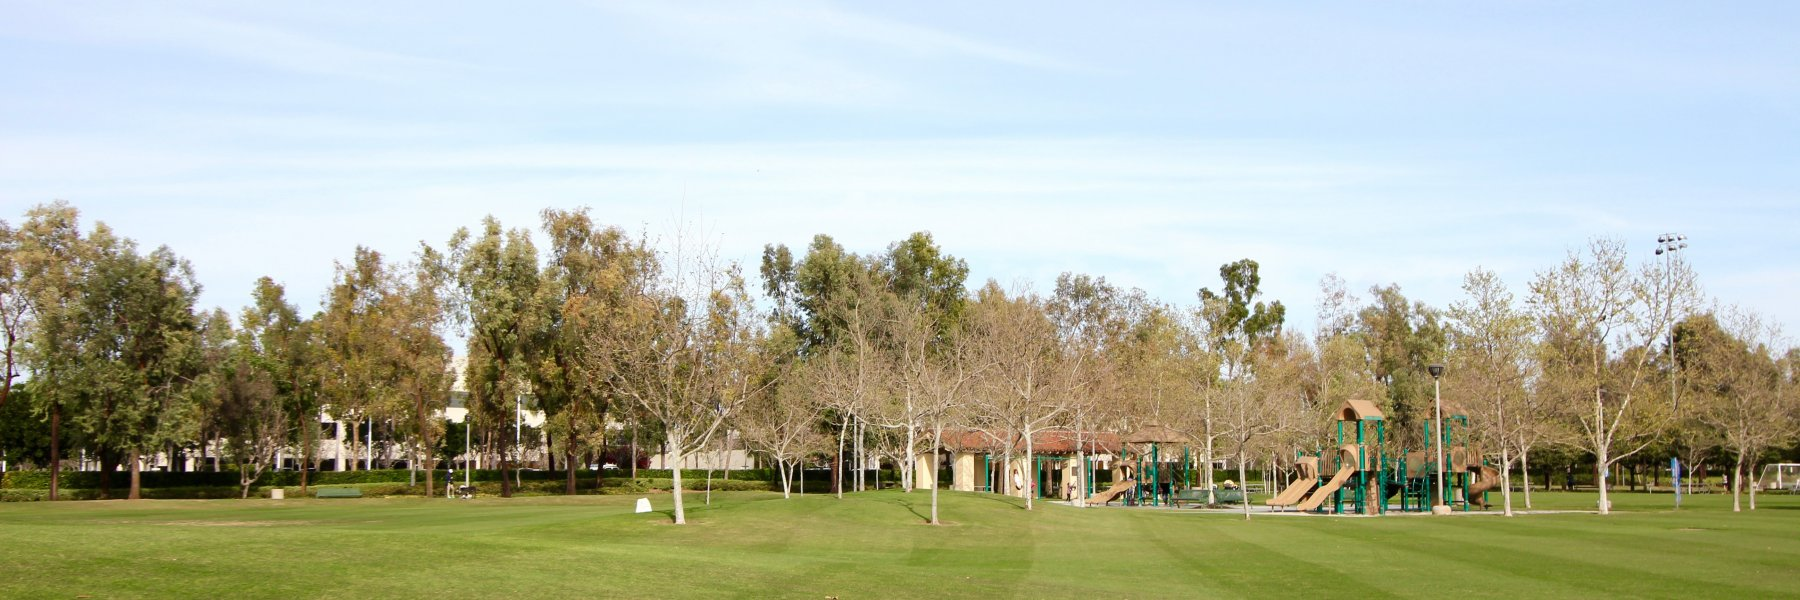 Oak Creek is a community of homes in Irvine California